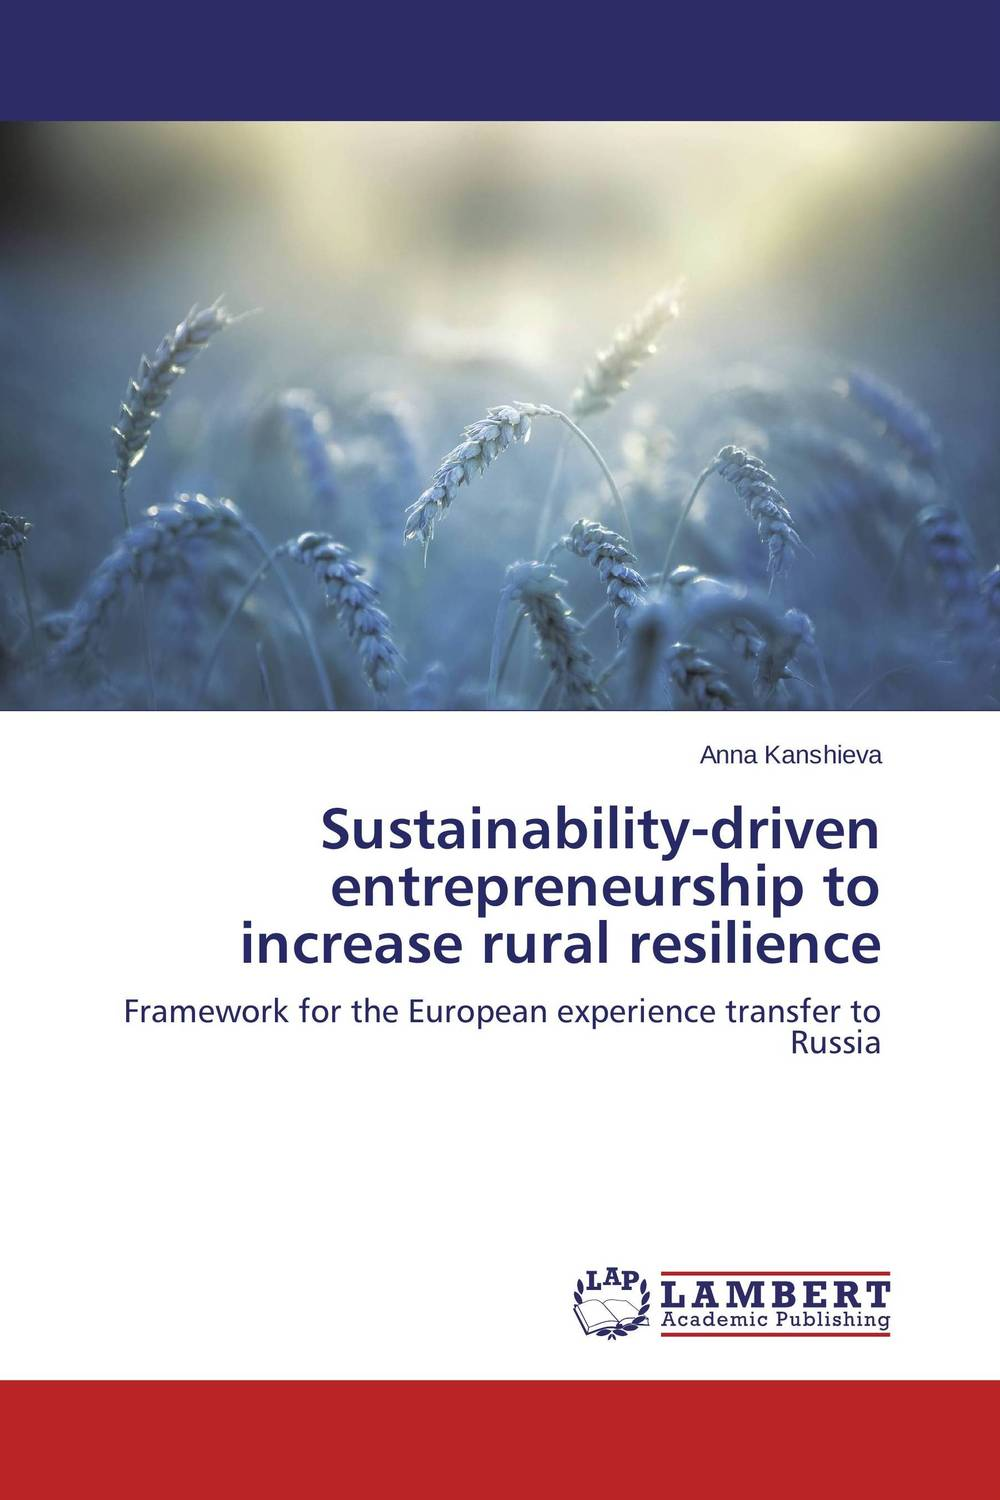 Sustainability-driven entrepreneurship to increase rural resilience driven to distraction